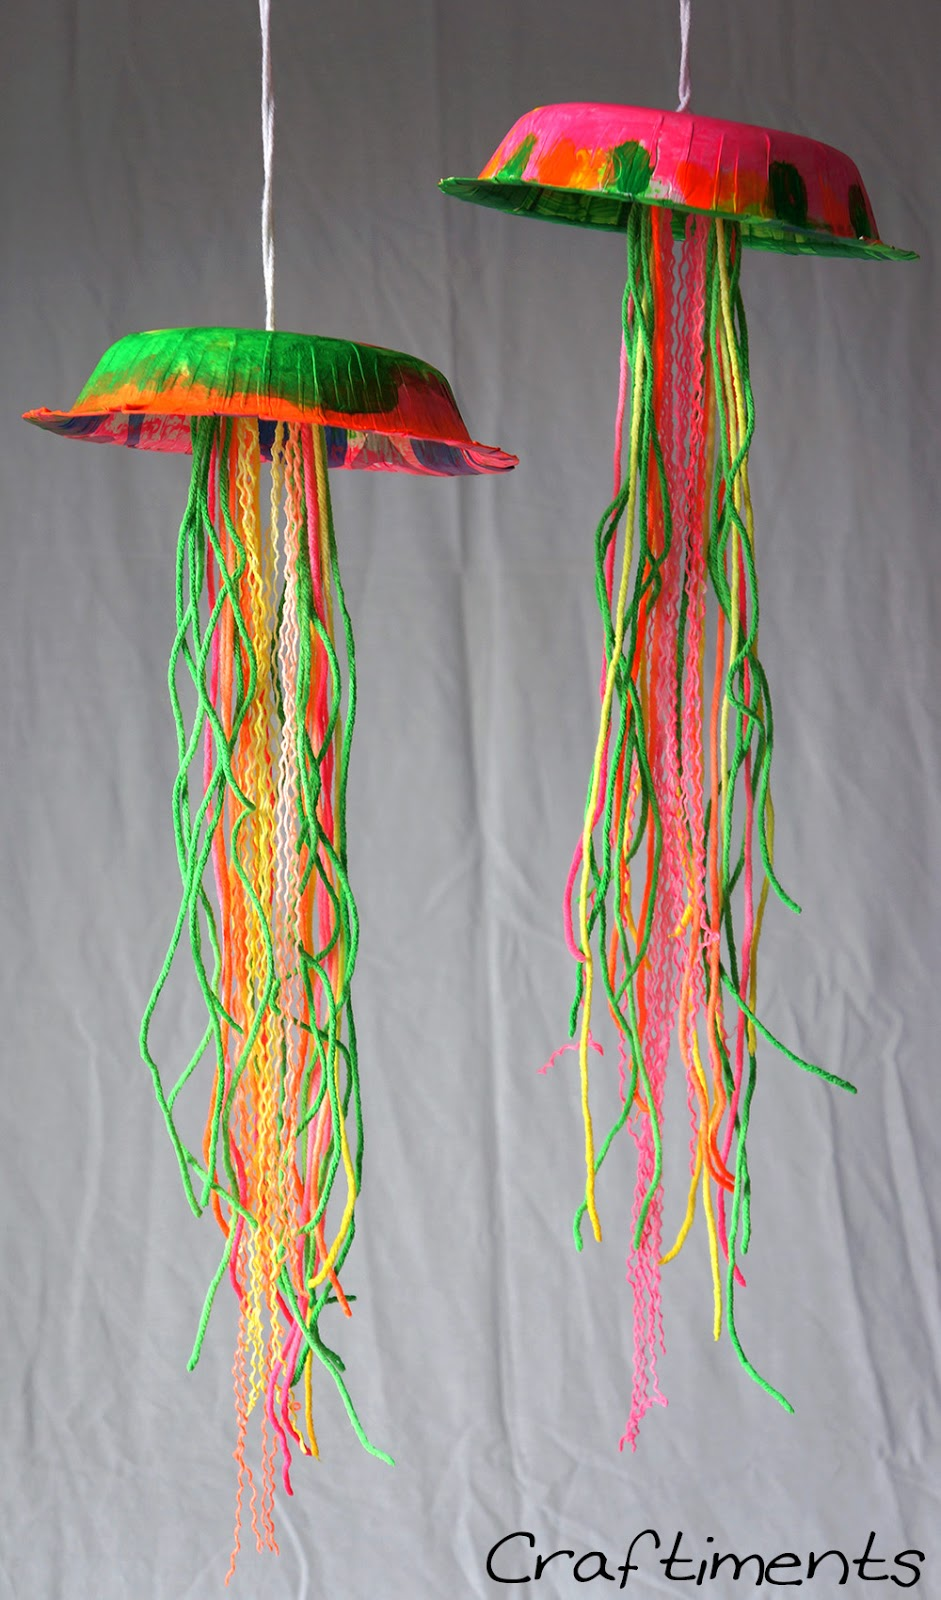 Diy Jellyfish Decorations Craftiments Glow In The Dark Jellyfish Craft